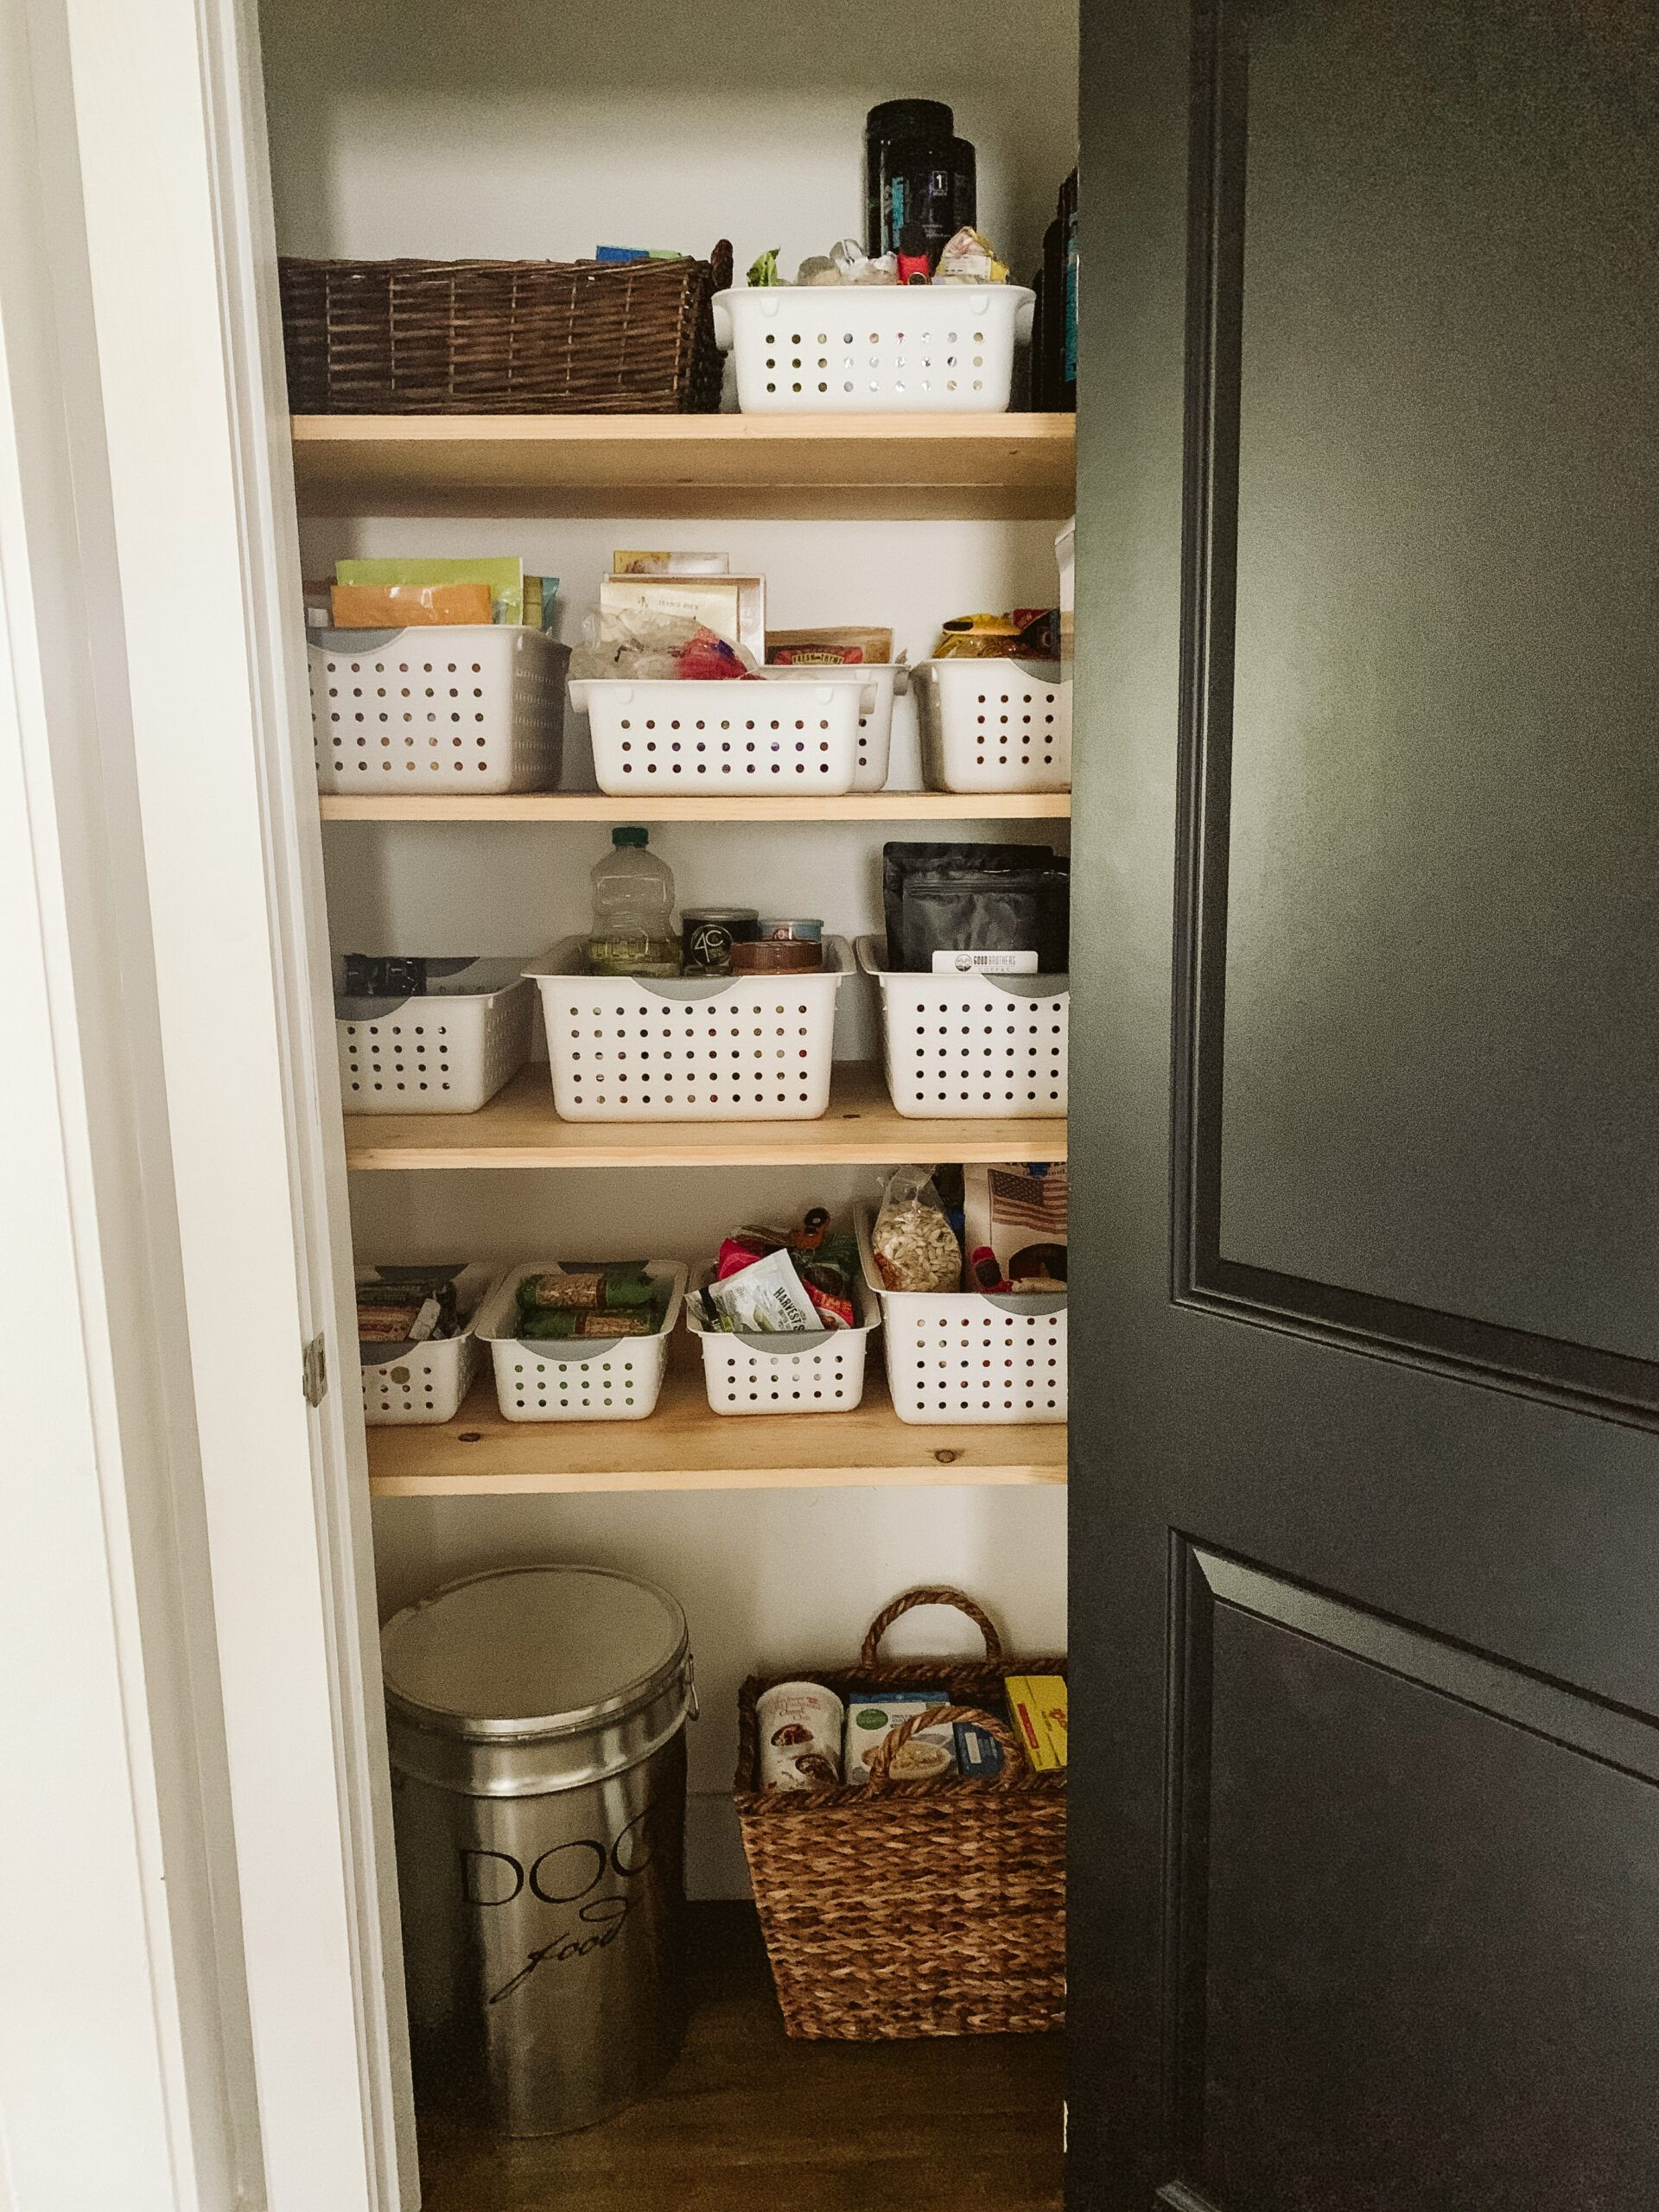 3 quick weekend organization projects deep pantry organization diy kitchen decor small space on kitchen decor organization id=26173